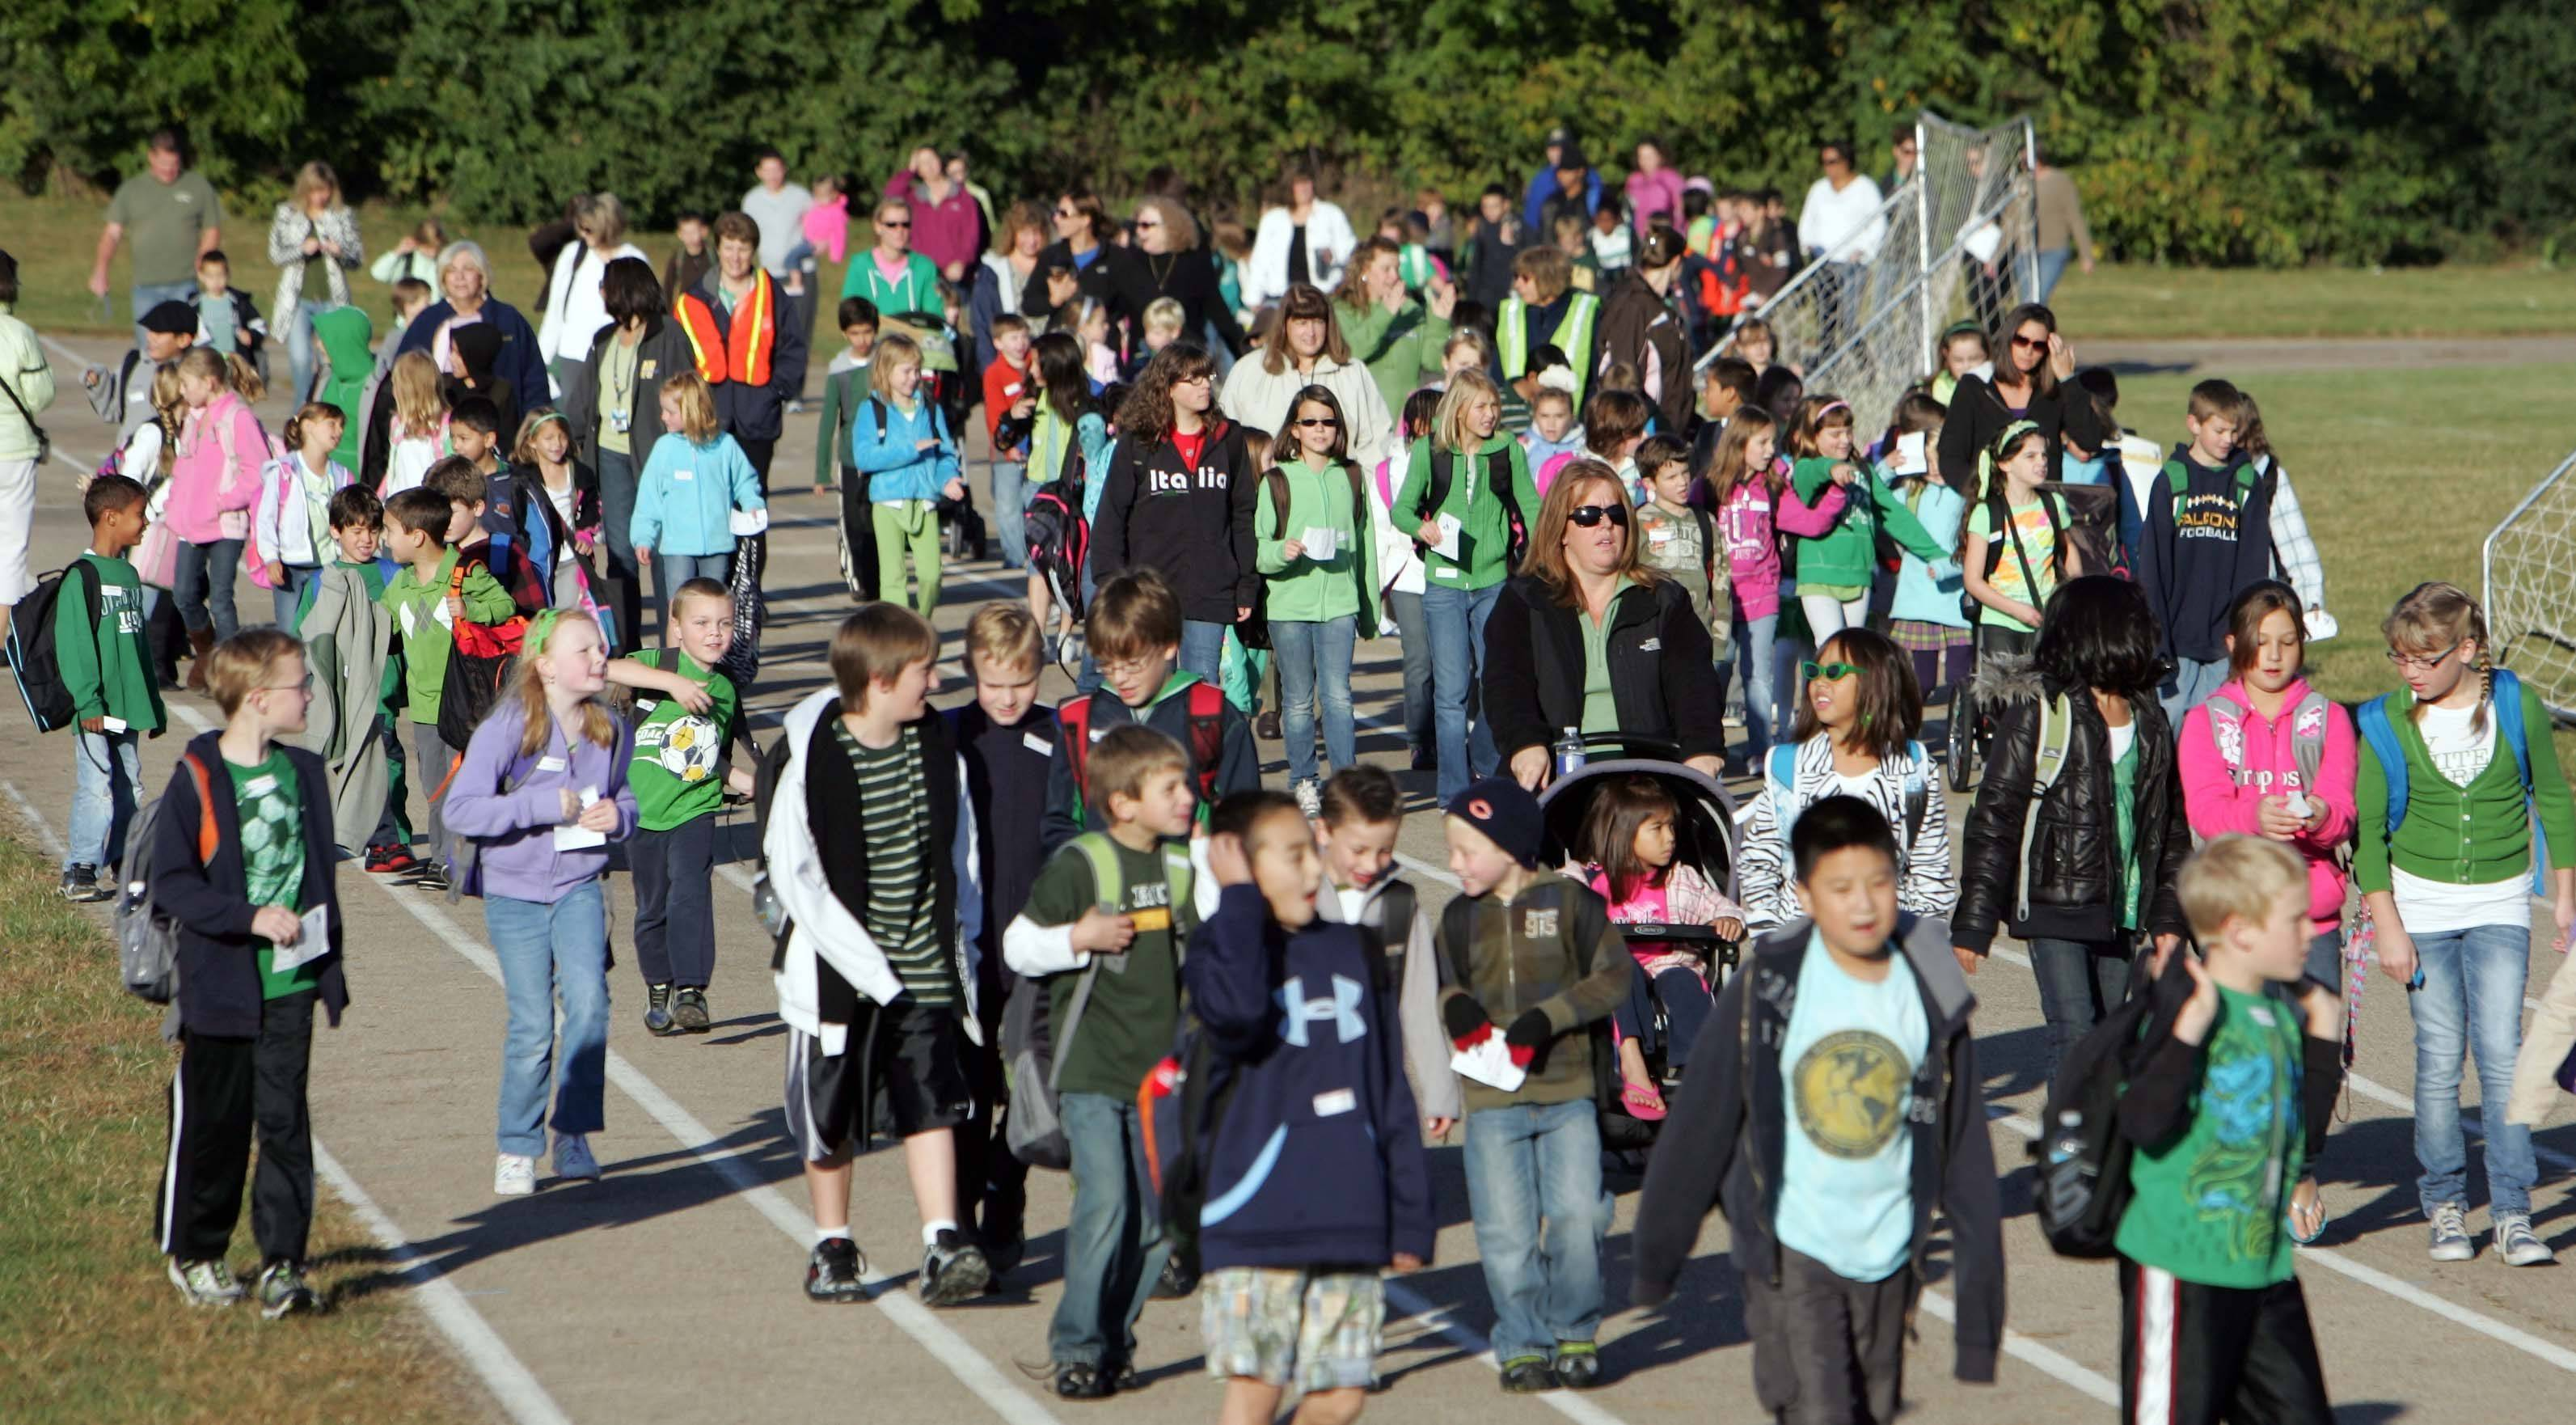 More than 400 students at Westfield Community School in Algonquin participated in the International Walk to School day. Students who had to ride busses to school got a chance to walk around the track instead.